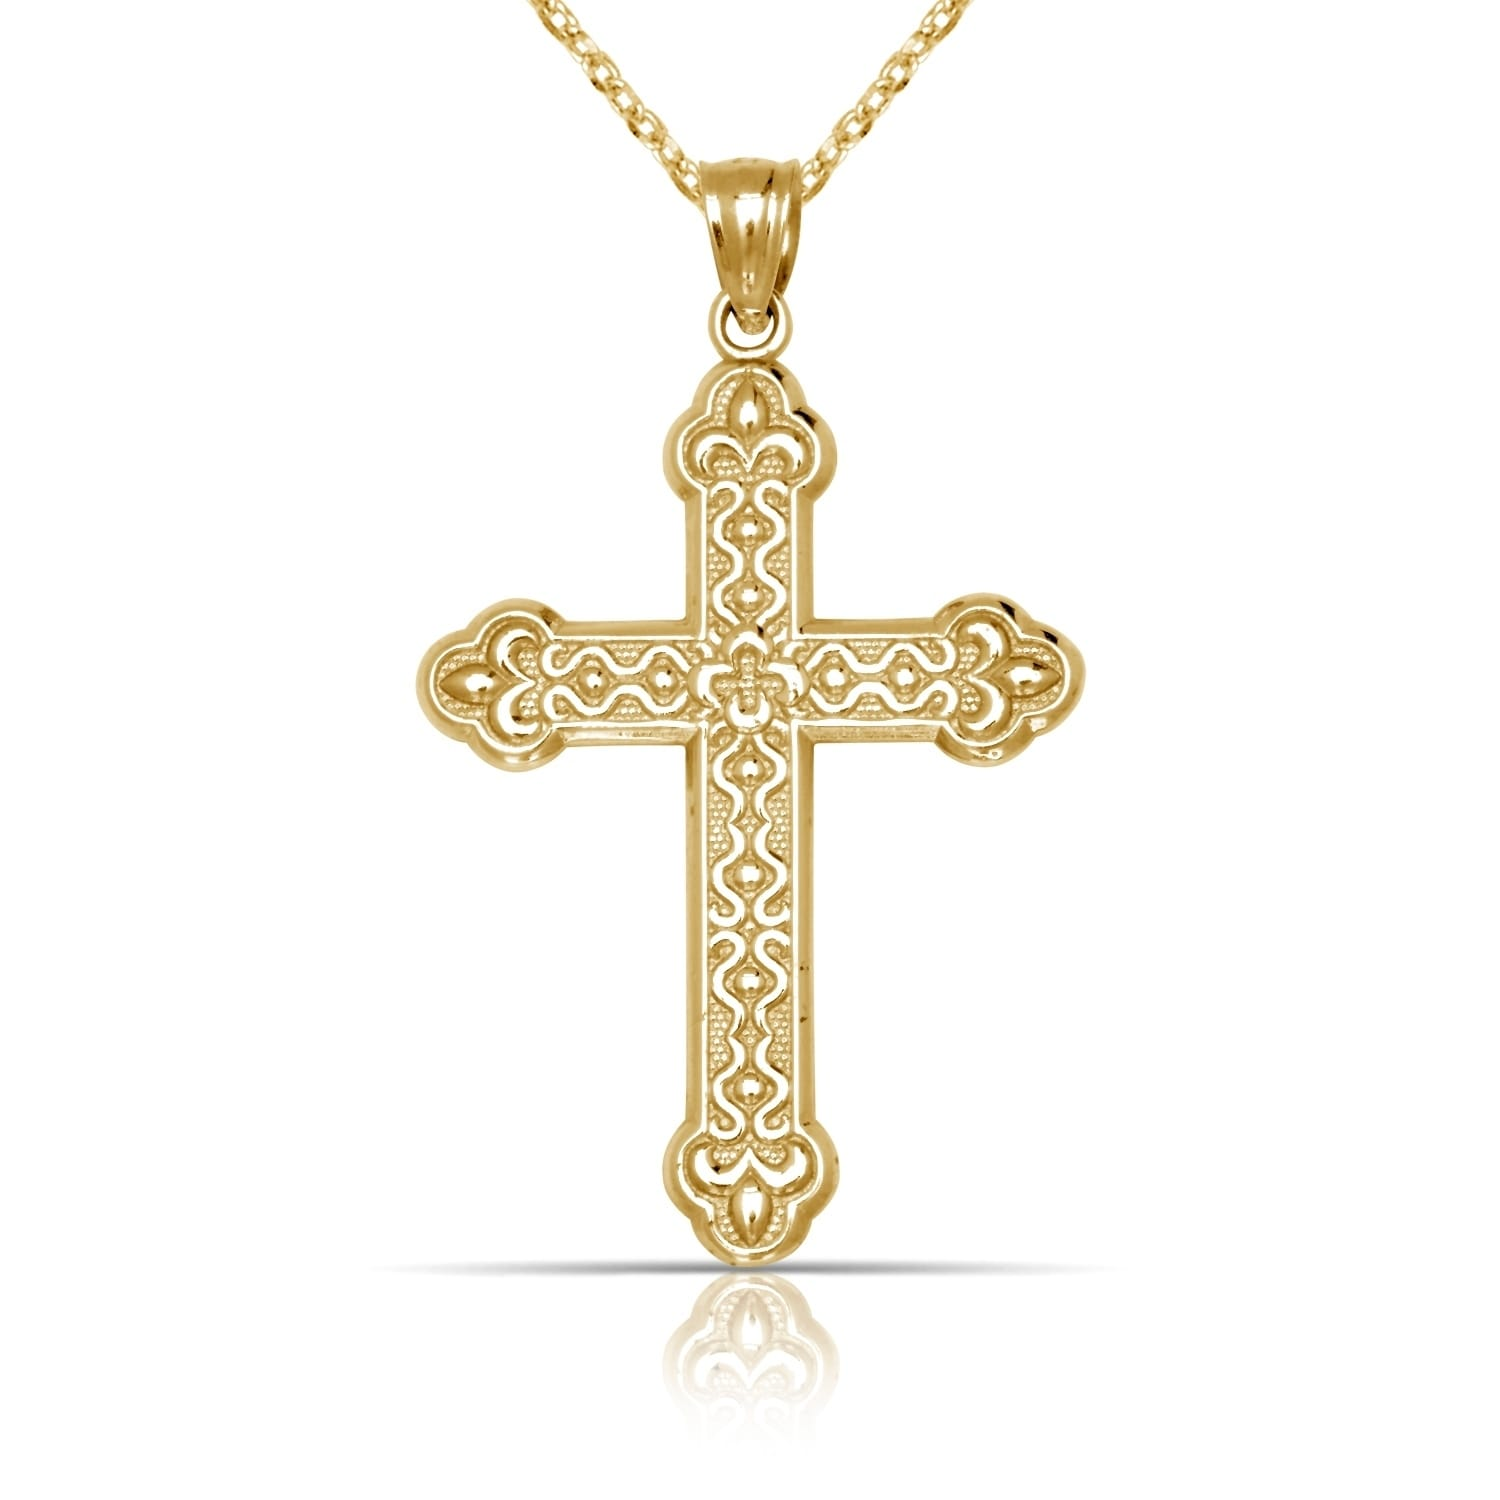 Solid 14K Yellow Gold Large Ornate Budded Cross Pendant Necklace ...